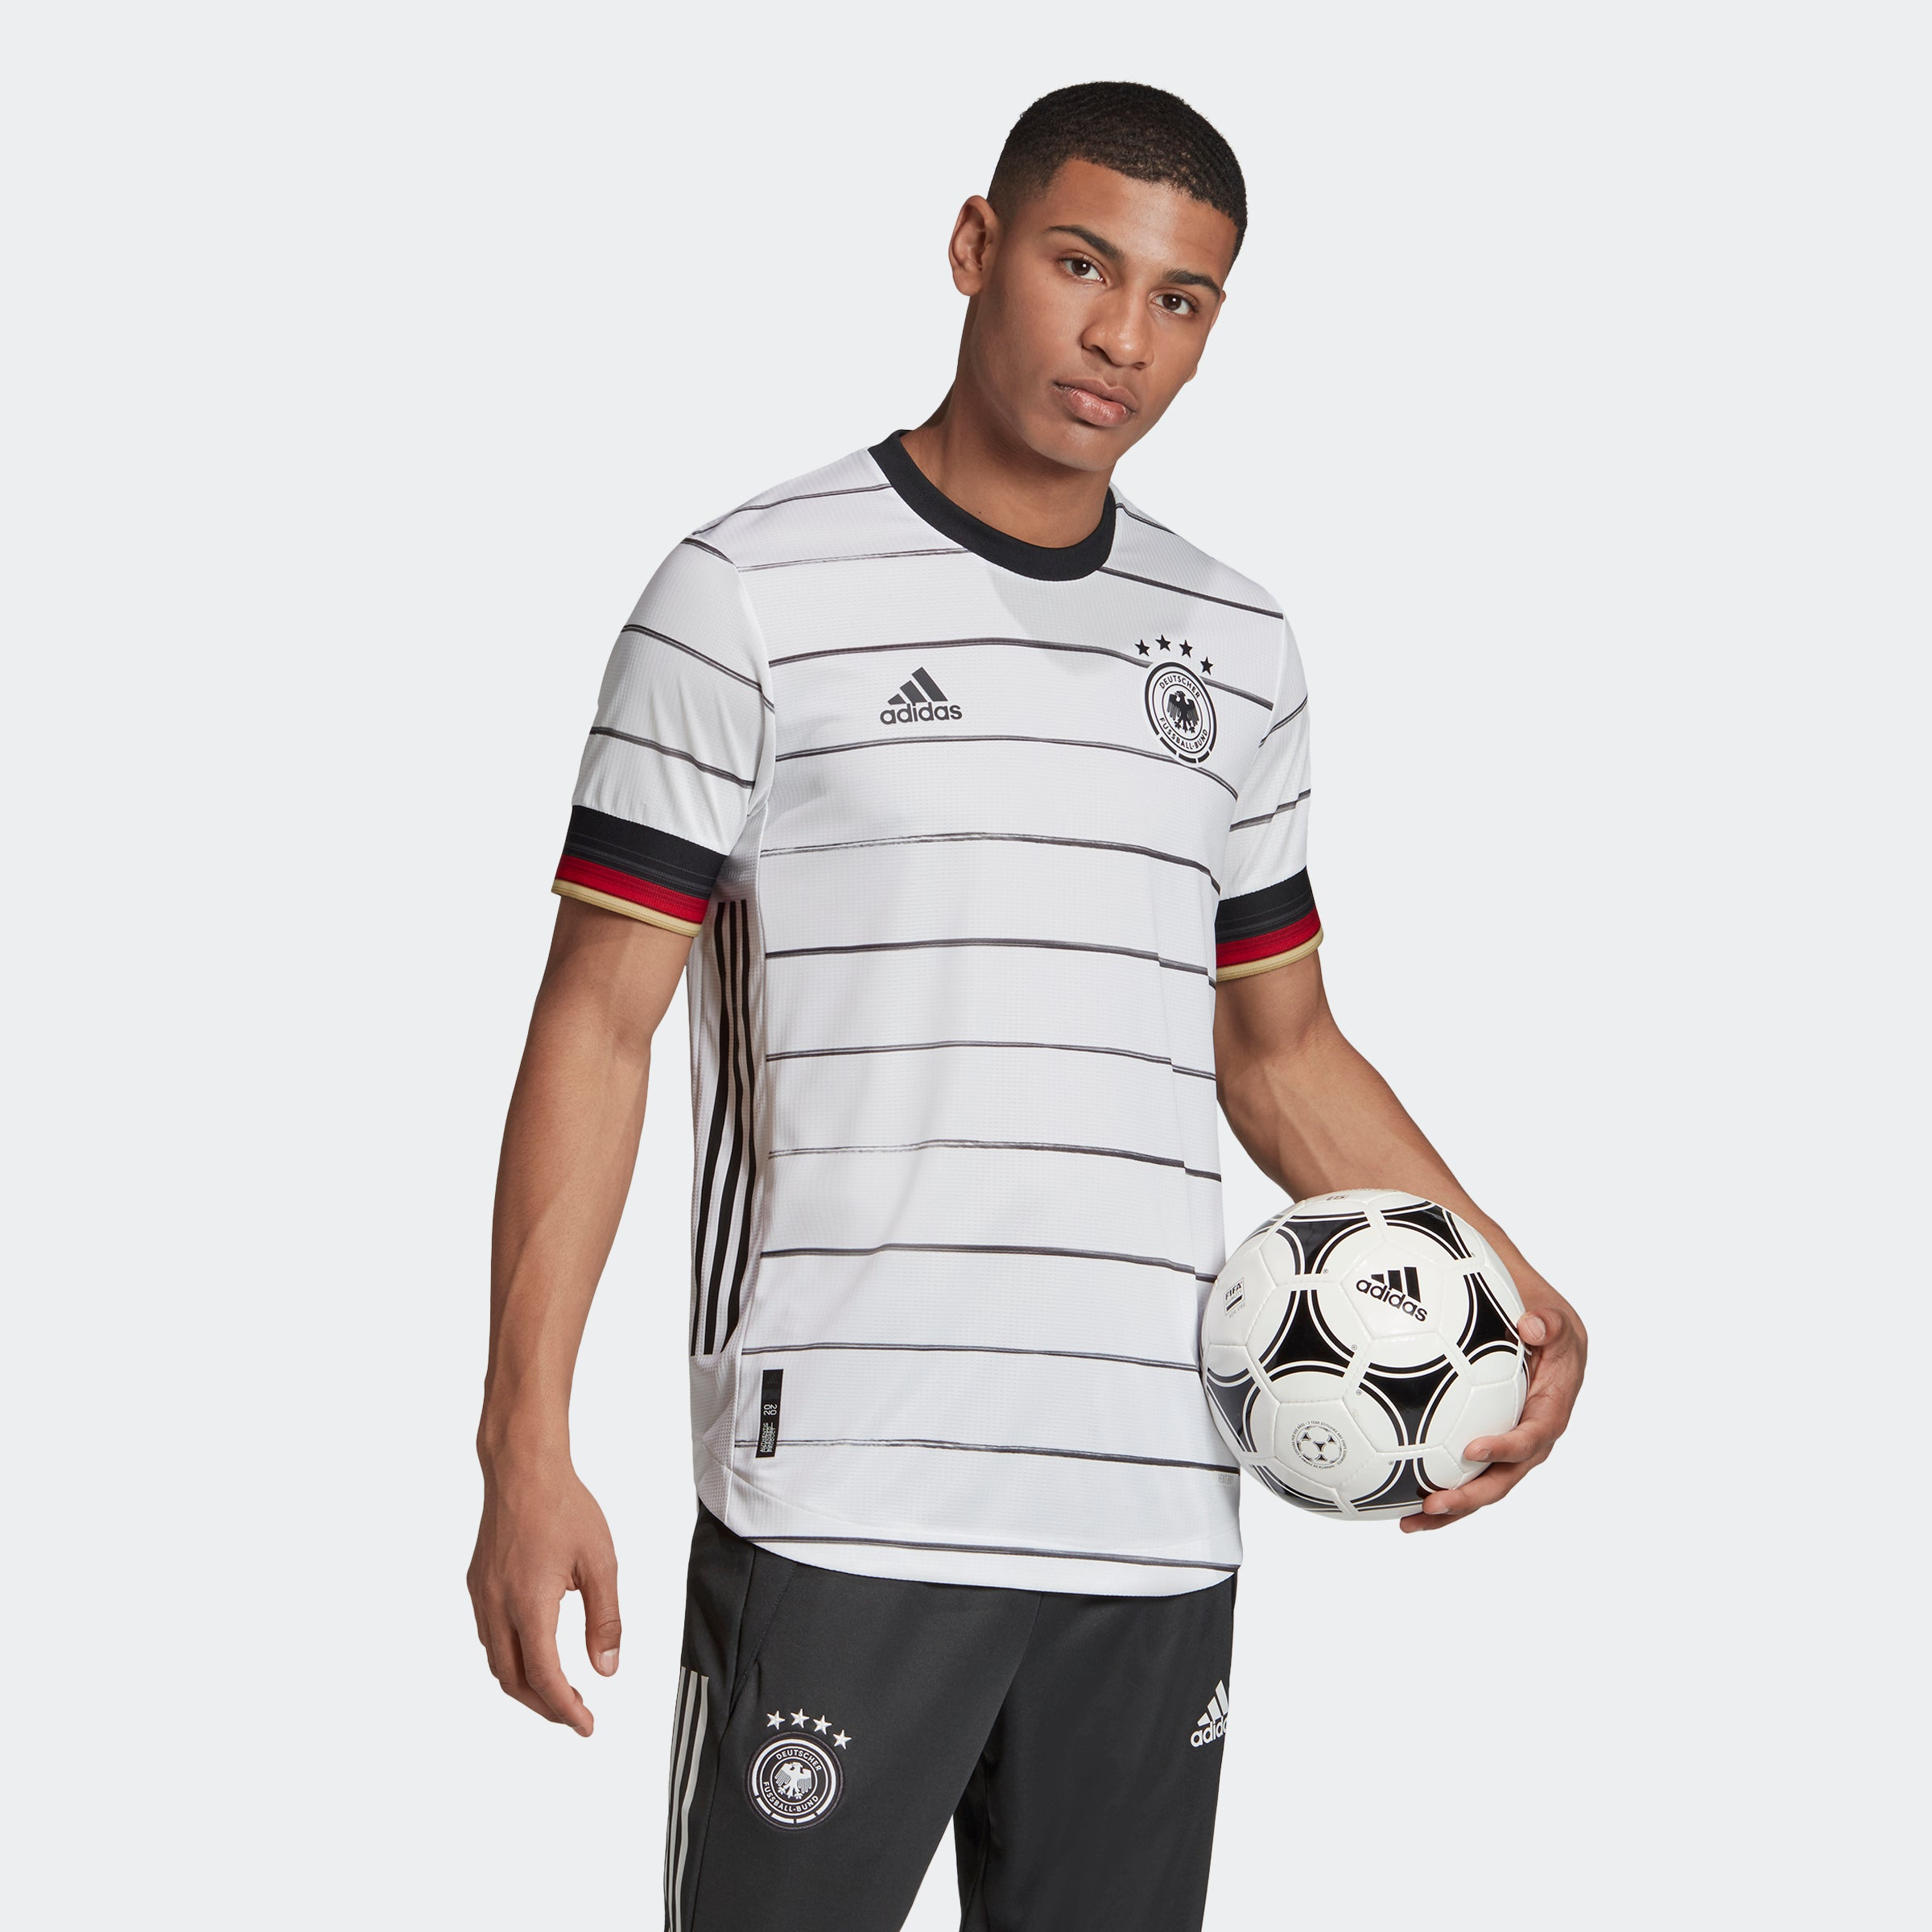 Germany Authentic Home Jersey - Men's - Niky's Sports